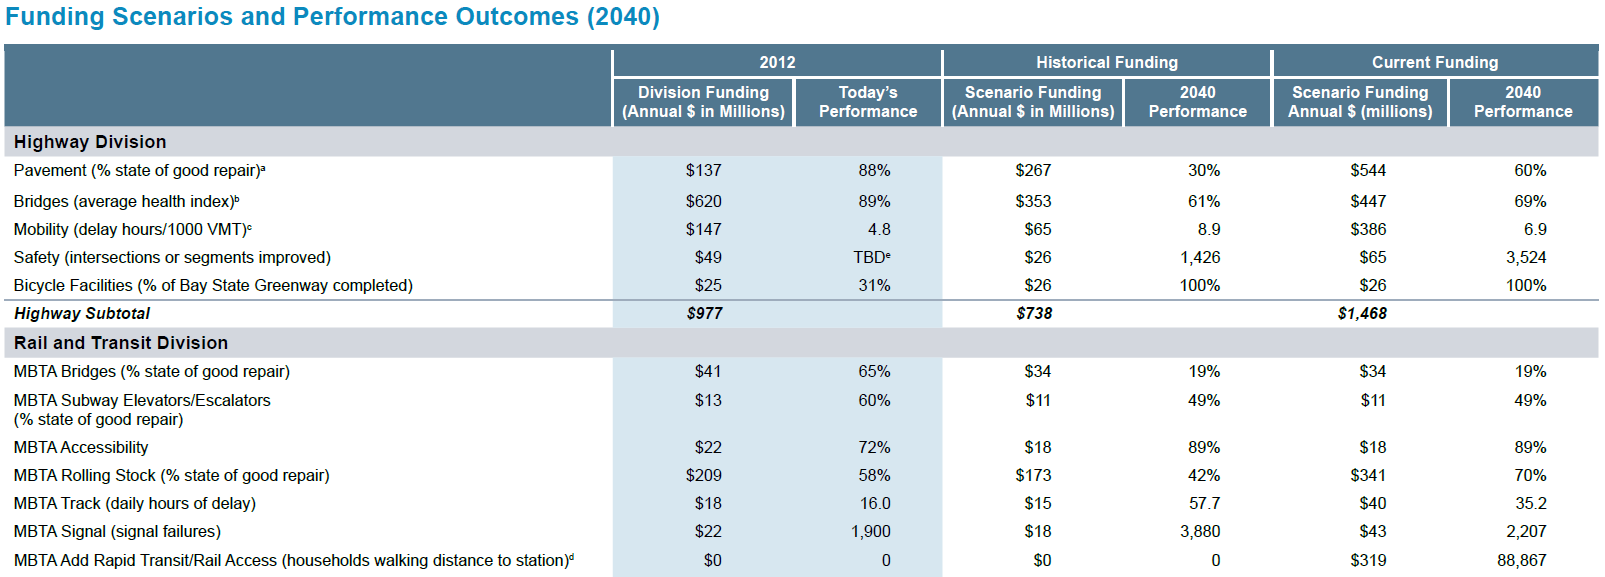 Funding scenarios and performance outcomes projected for 2040. Measures are divided by highway and rail and transit and historical and current funding is compared, with outcomes for each measure at that funding level.